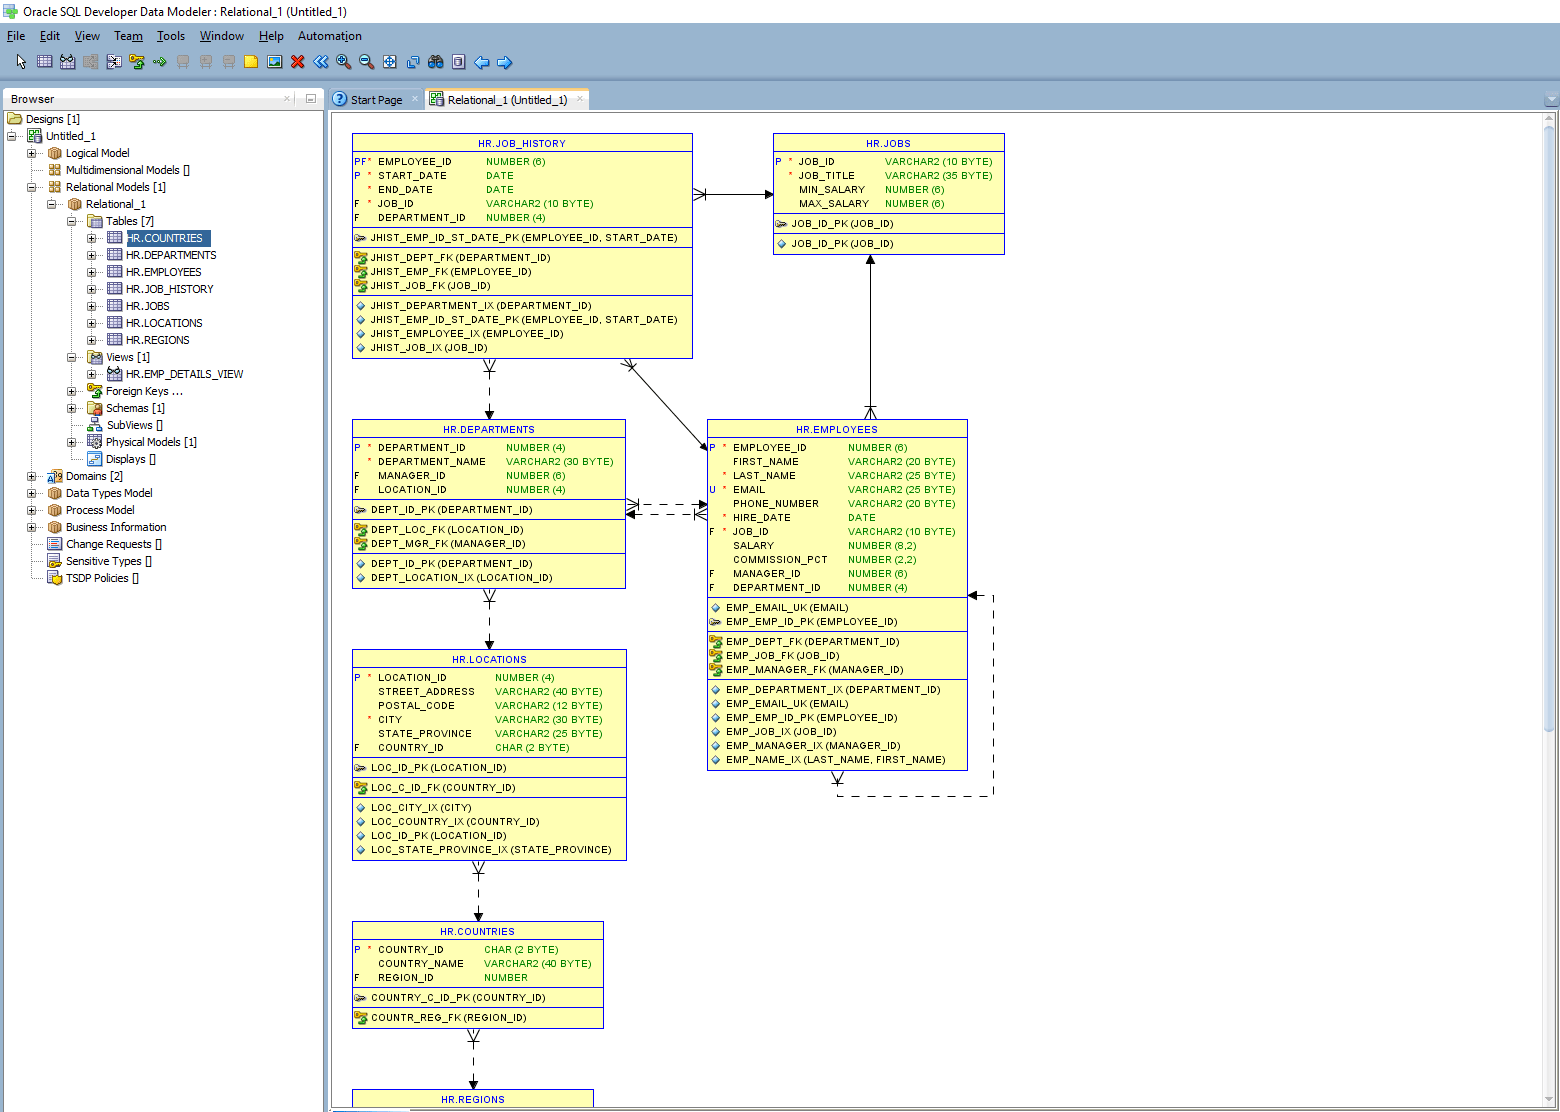 pl sql developer er diagram bazooka bta850fh wiring how to generate database documentation with oracle if you would like modify the appearance of model just move objects on pane automatic layout doesn t handle well large amounts tables